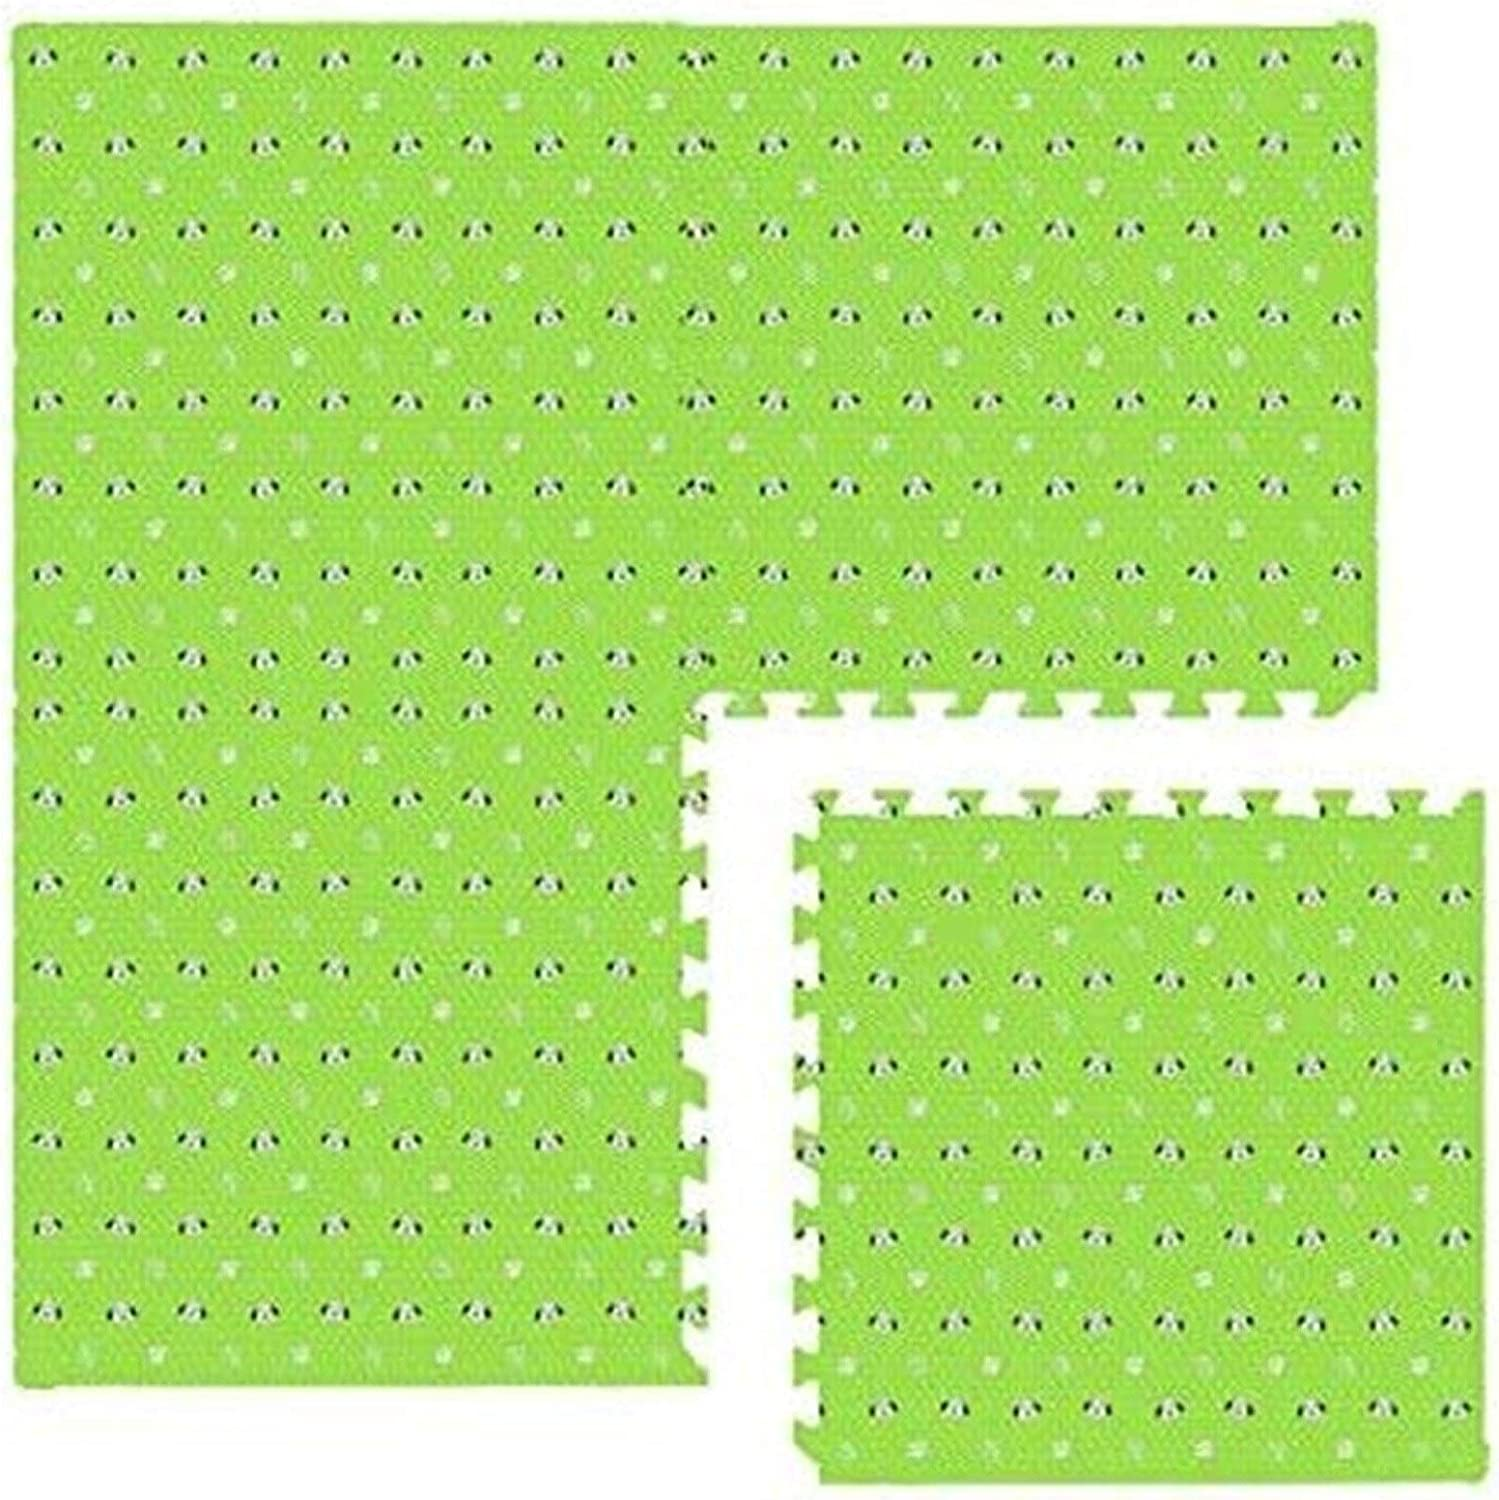 Puzzle Play Mats Foam Exercise Floor Interlocking Soft Max 4 years warranty 52% OFF Mat